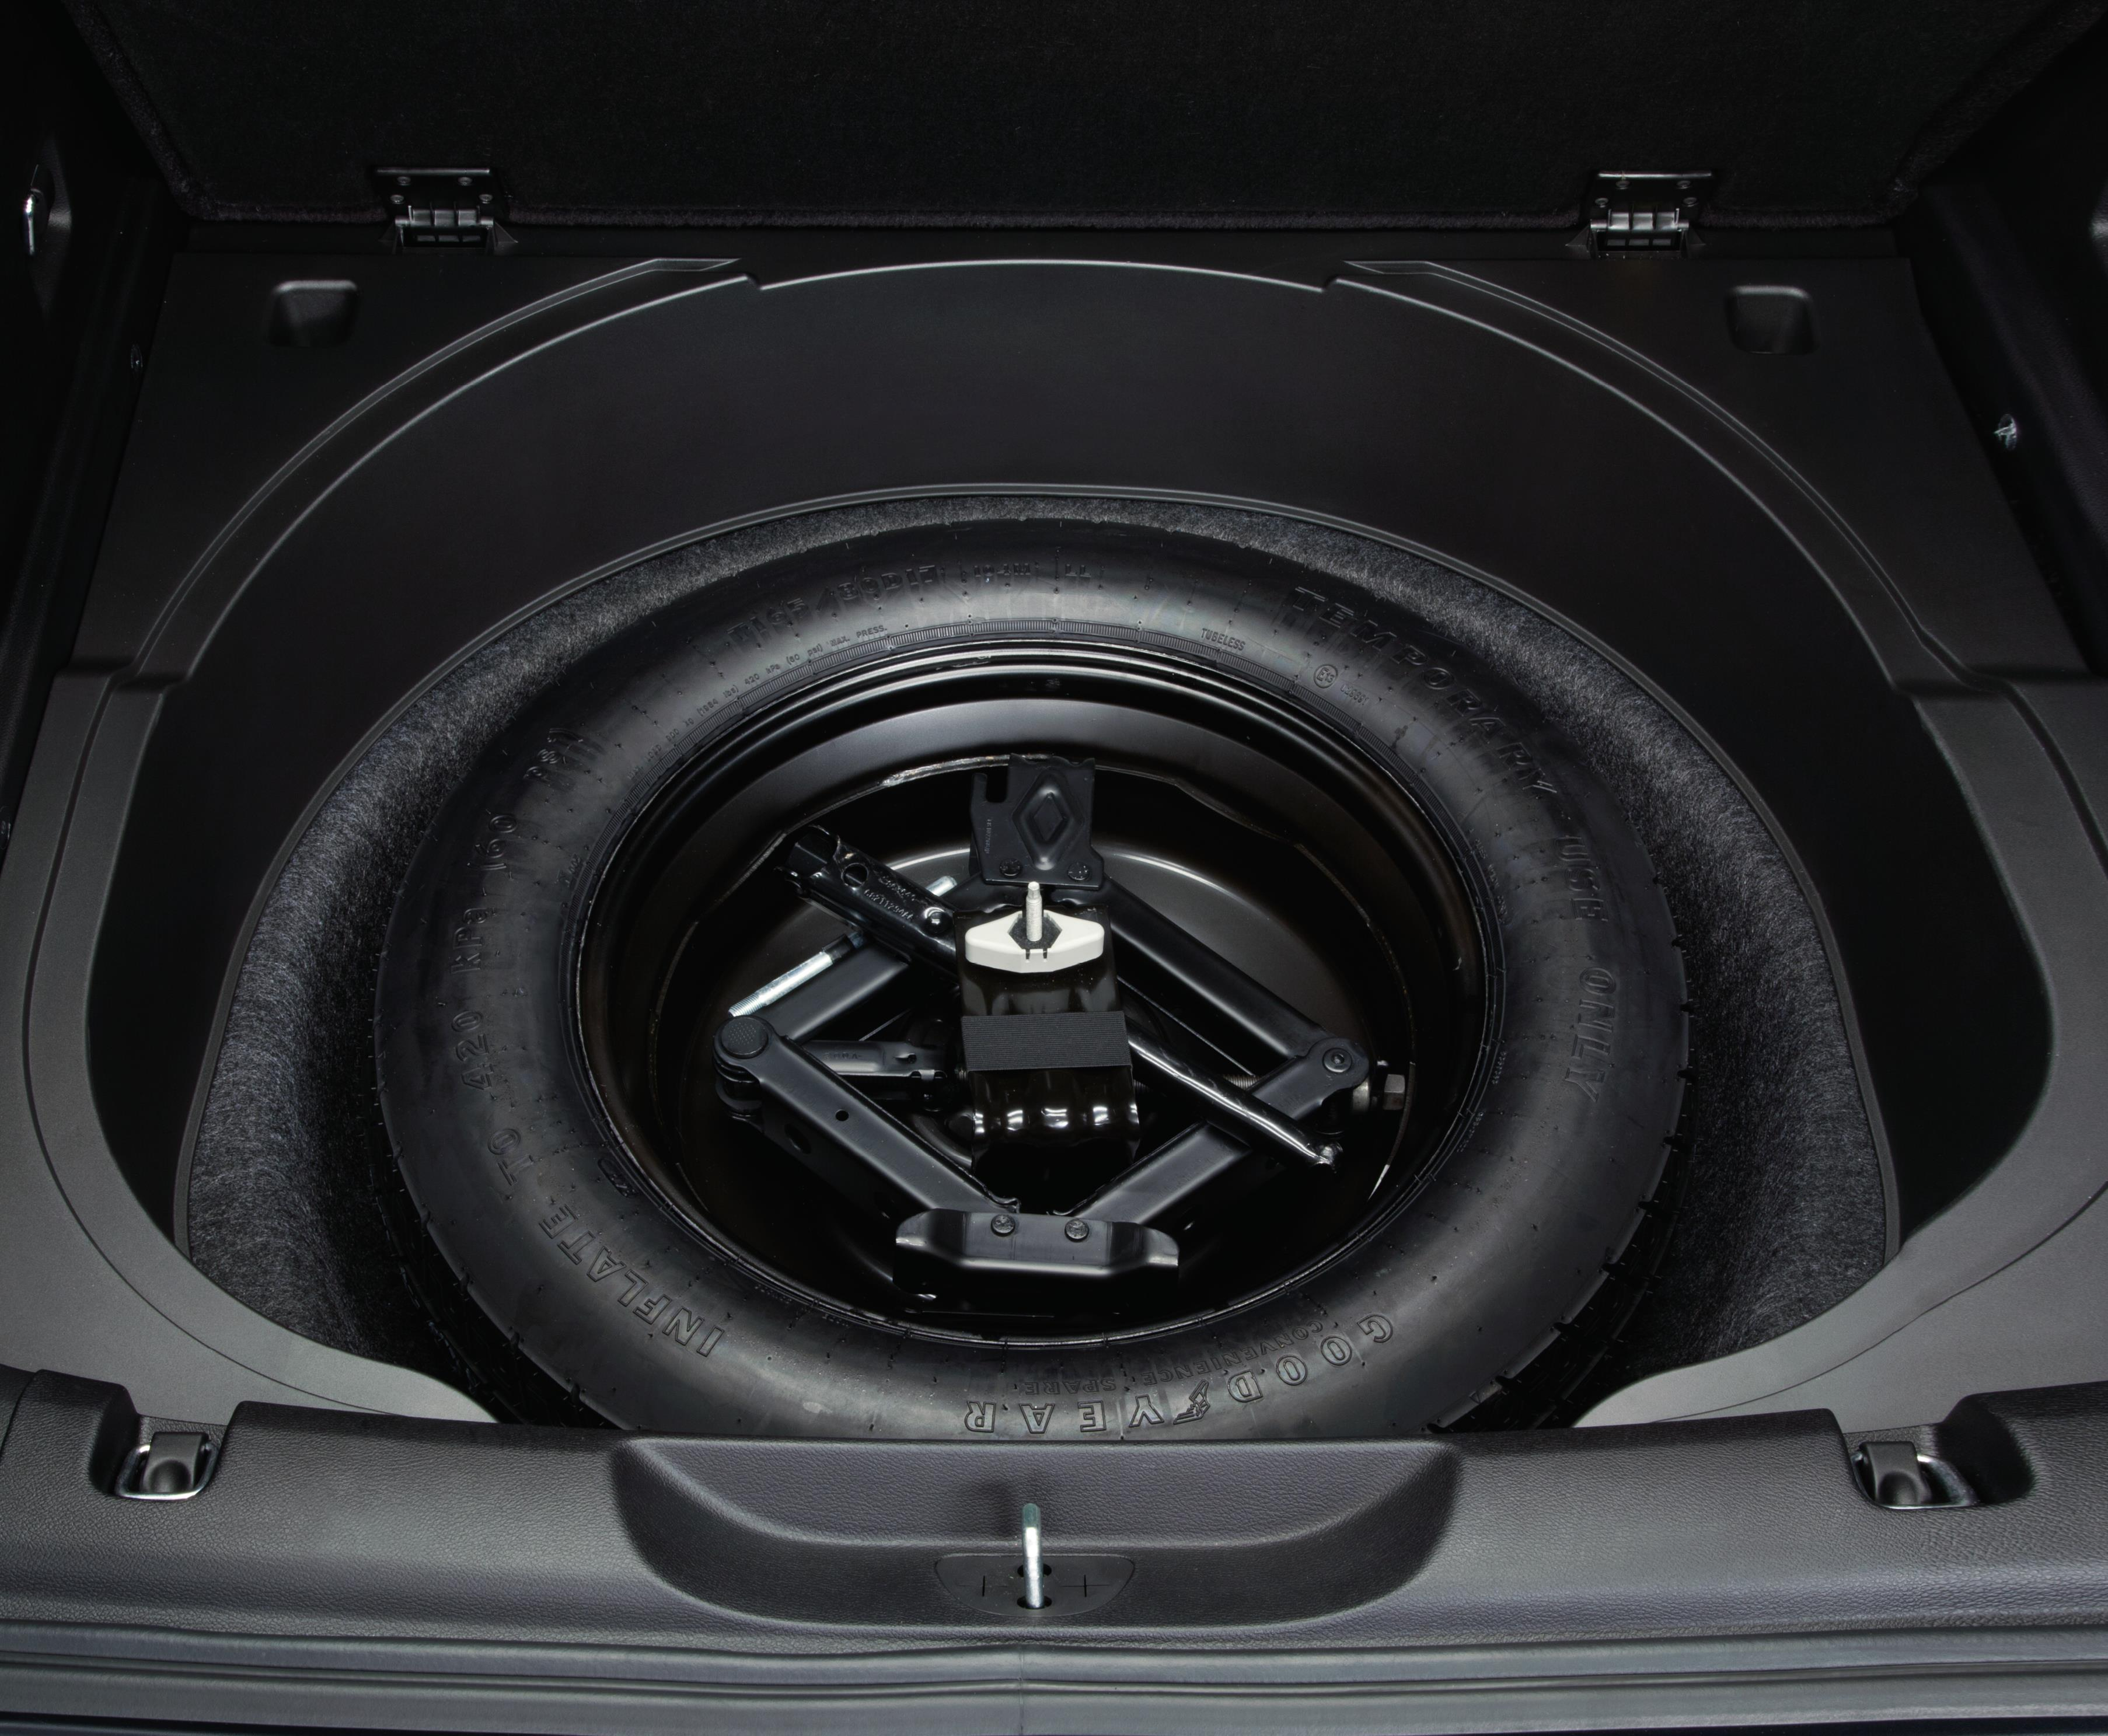 2018 Jeep Compass Spare Tire Kit Includes Compact Spare